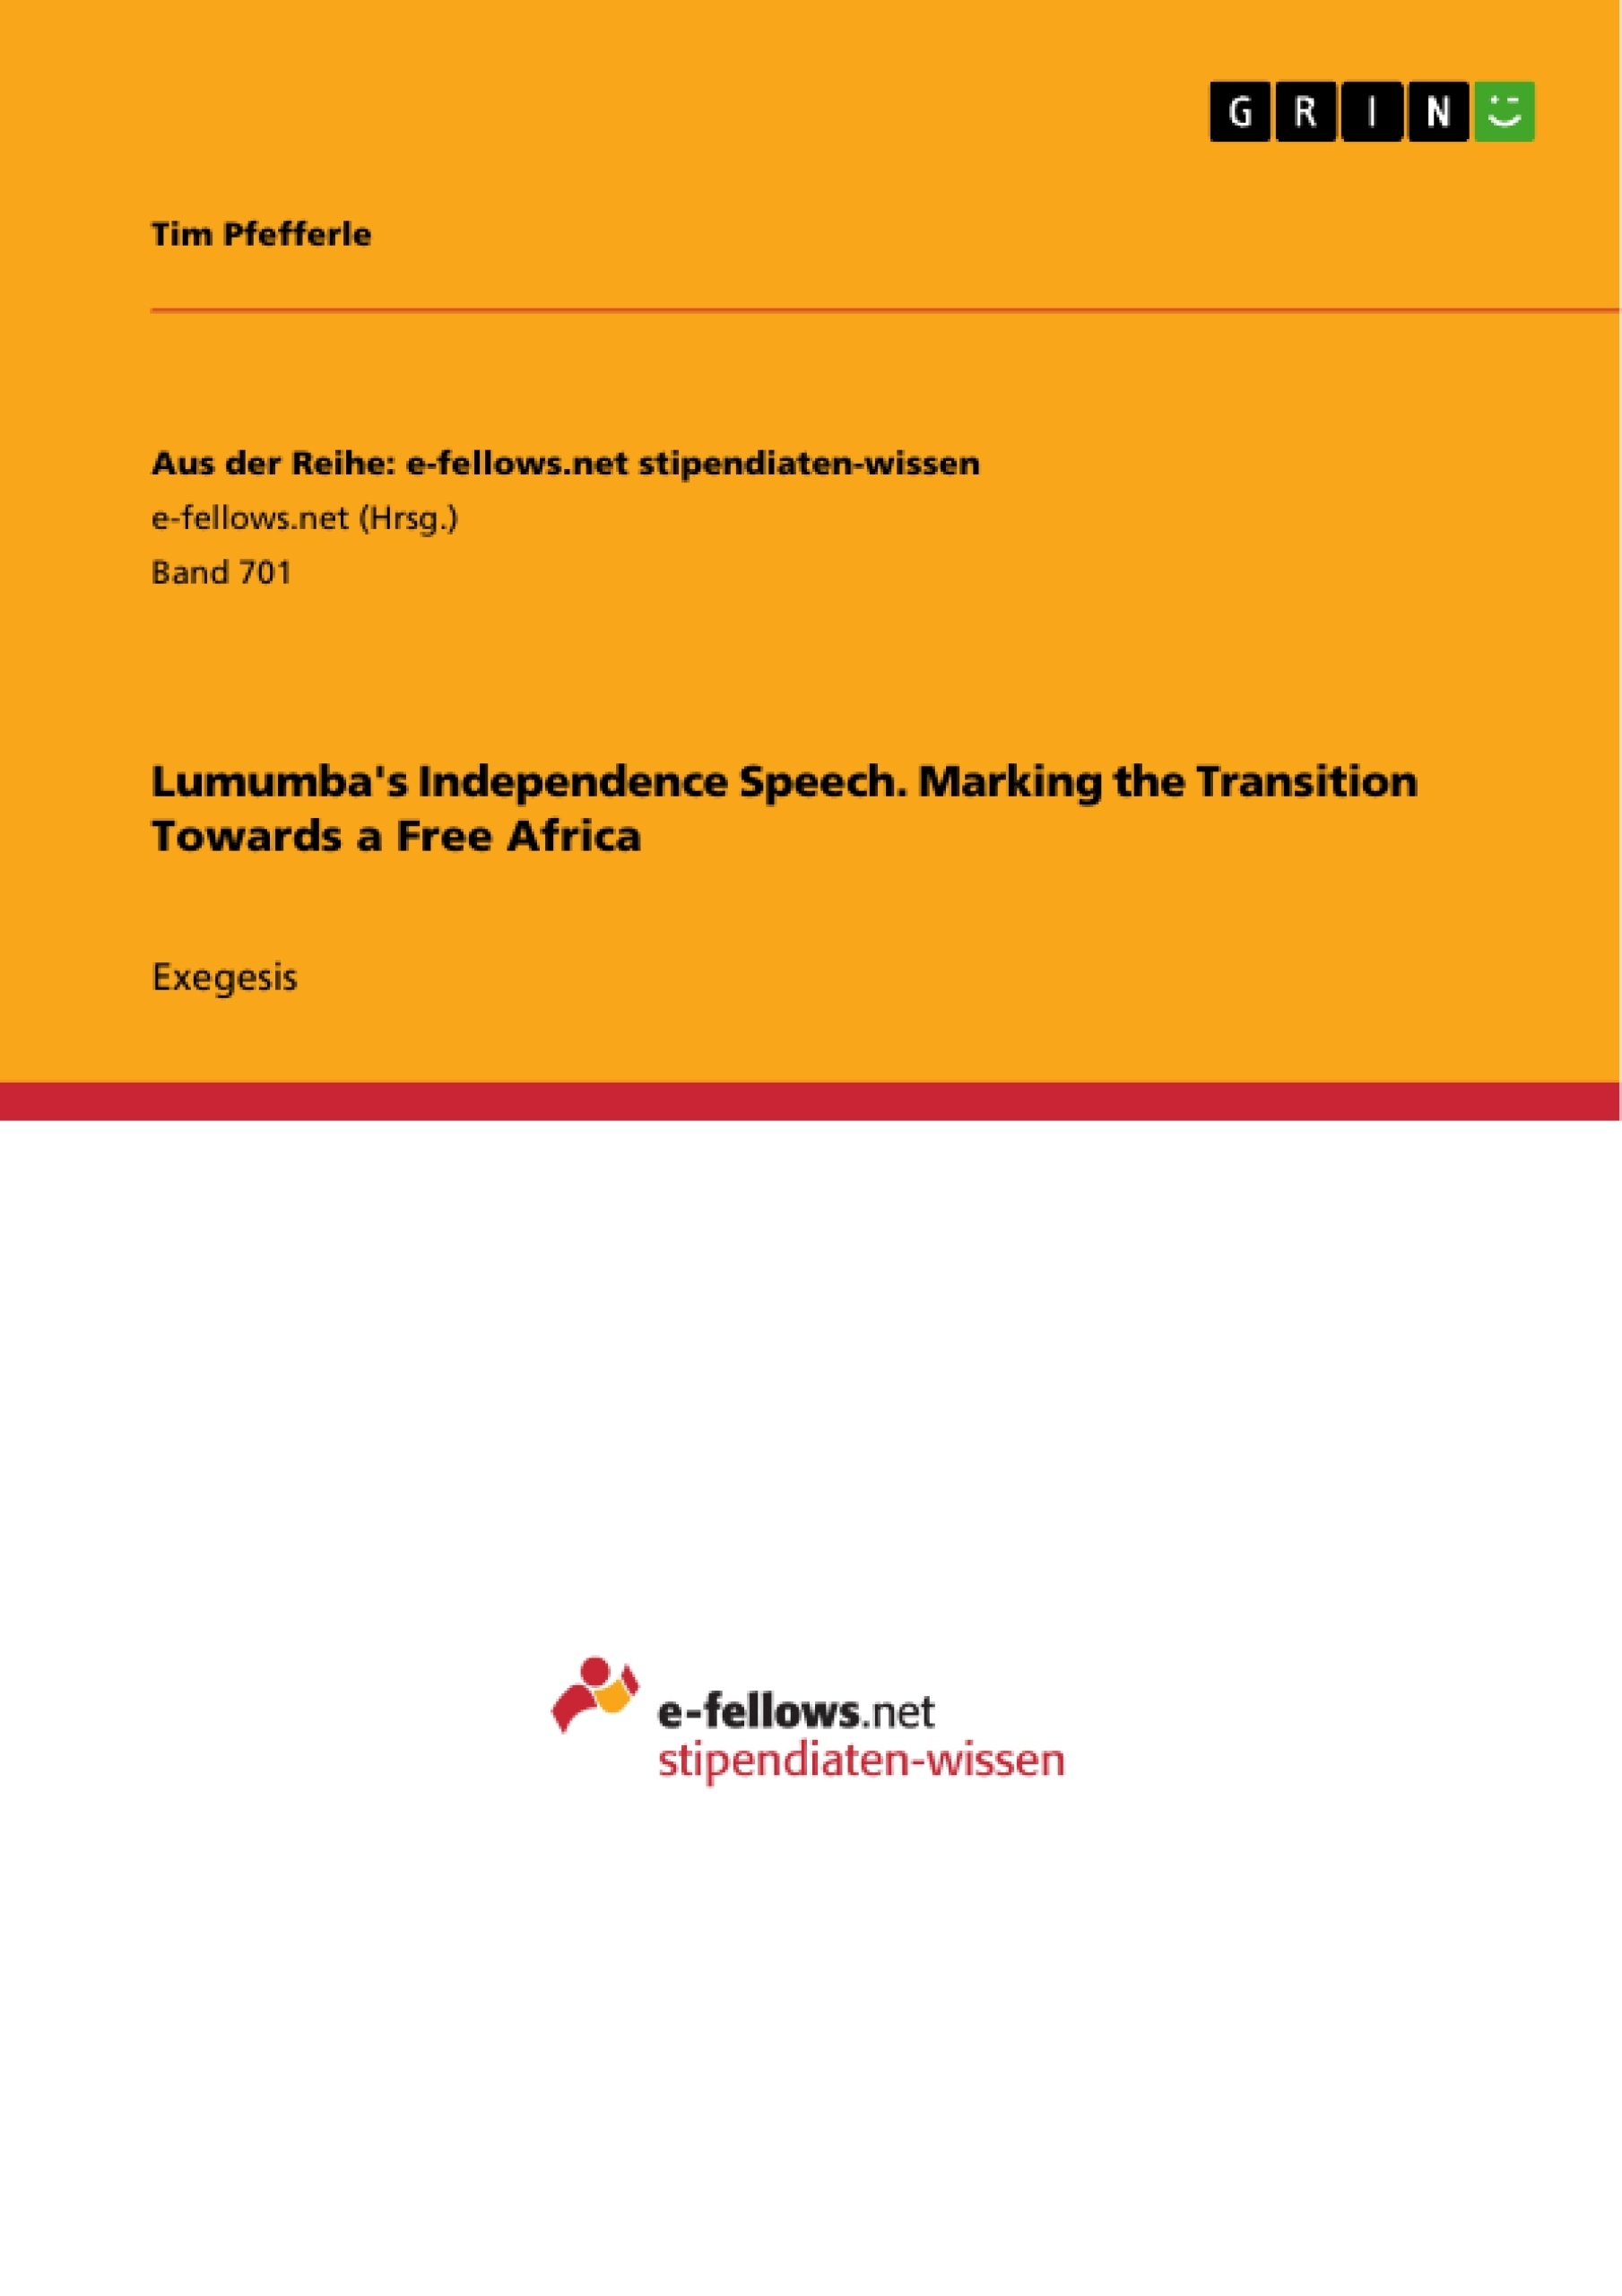 Title: Lumumba's Independence Speech. Marking the Transition Towards a Free Africa